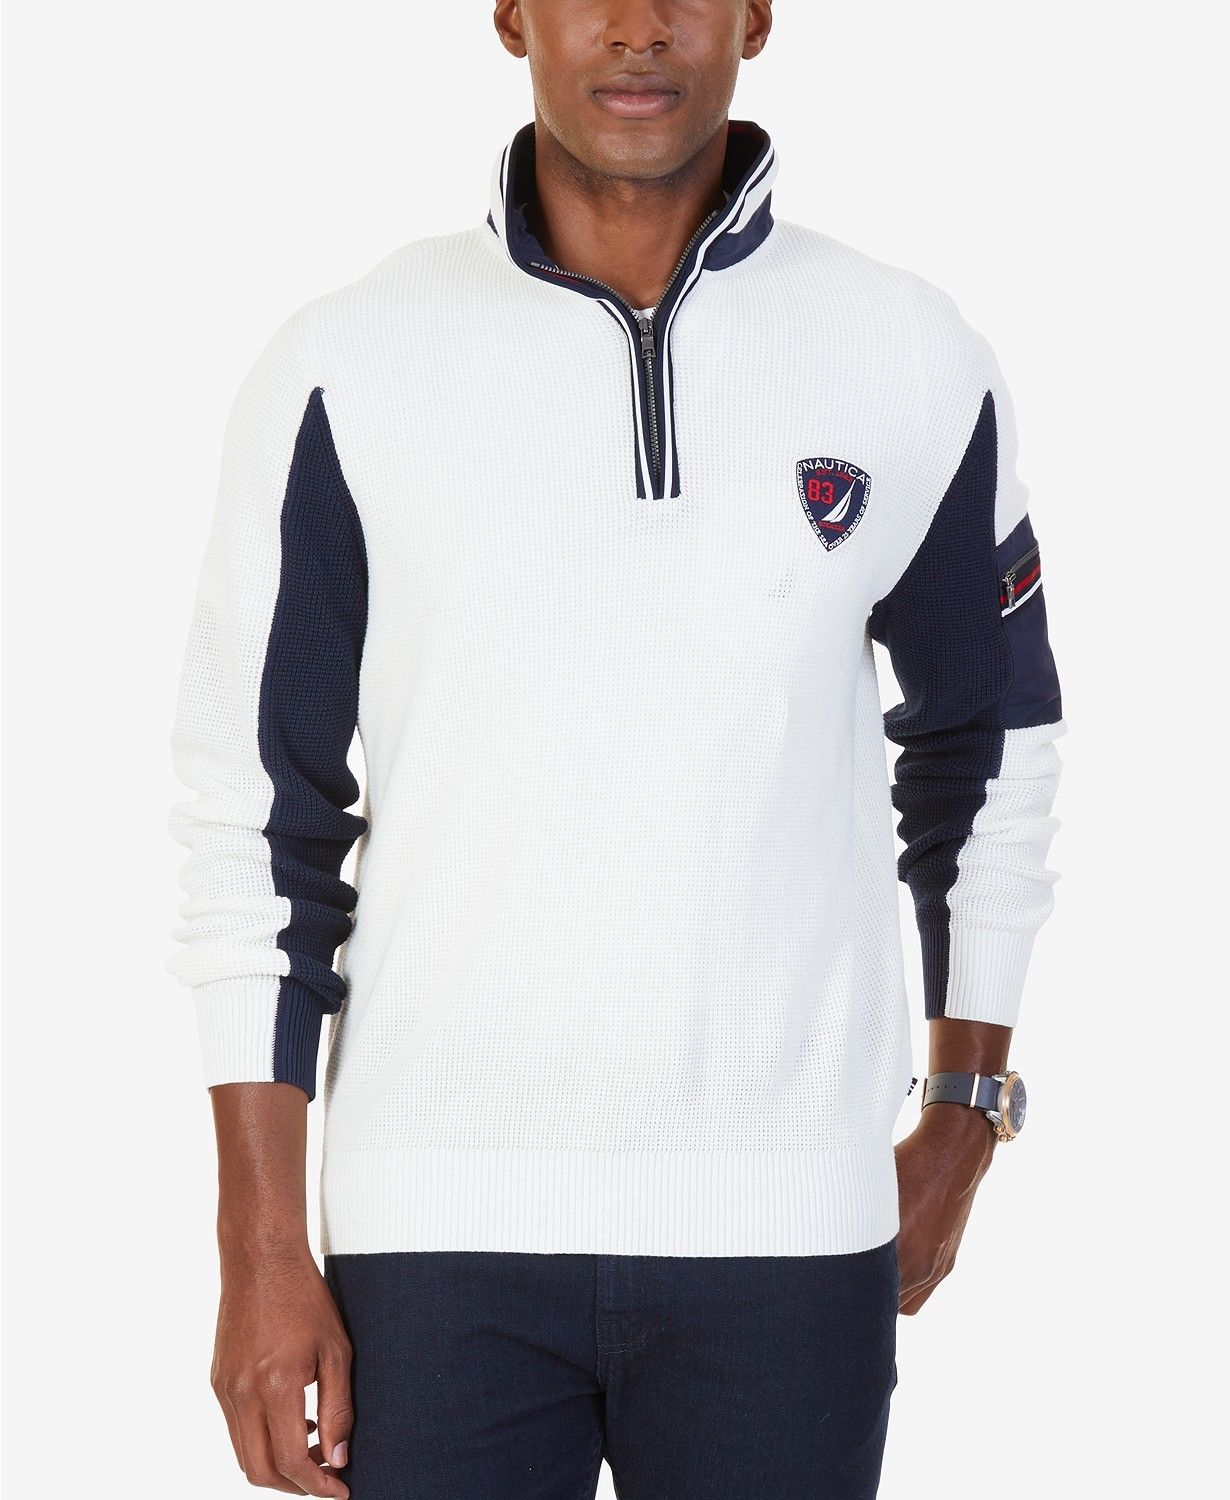 e62a387d84350 Nautica Men s White Navy Half-Zip Thermal Waffle-Knit Sweater NWT ...